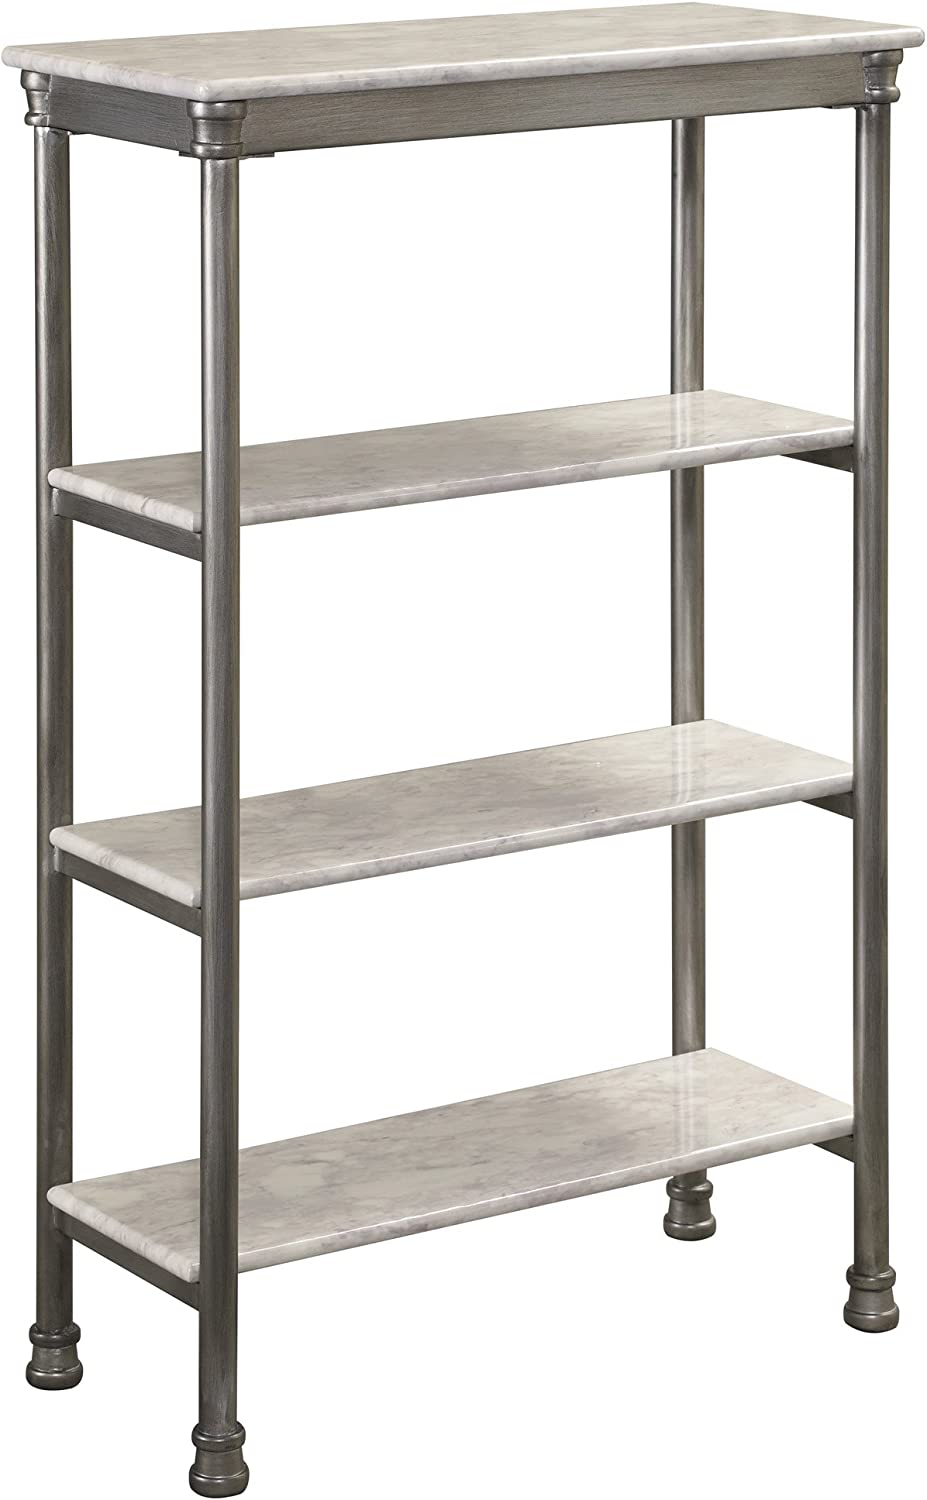 Home Styles The Orleans Marble Four-tier Shelves with Laminated Shelves, Powder-coated Steel Frame, and Levelers